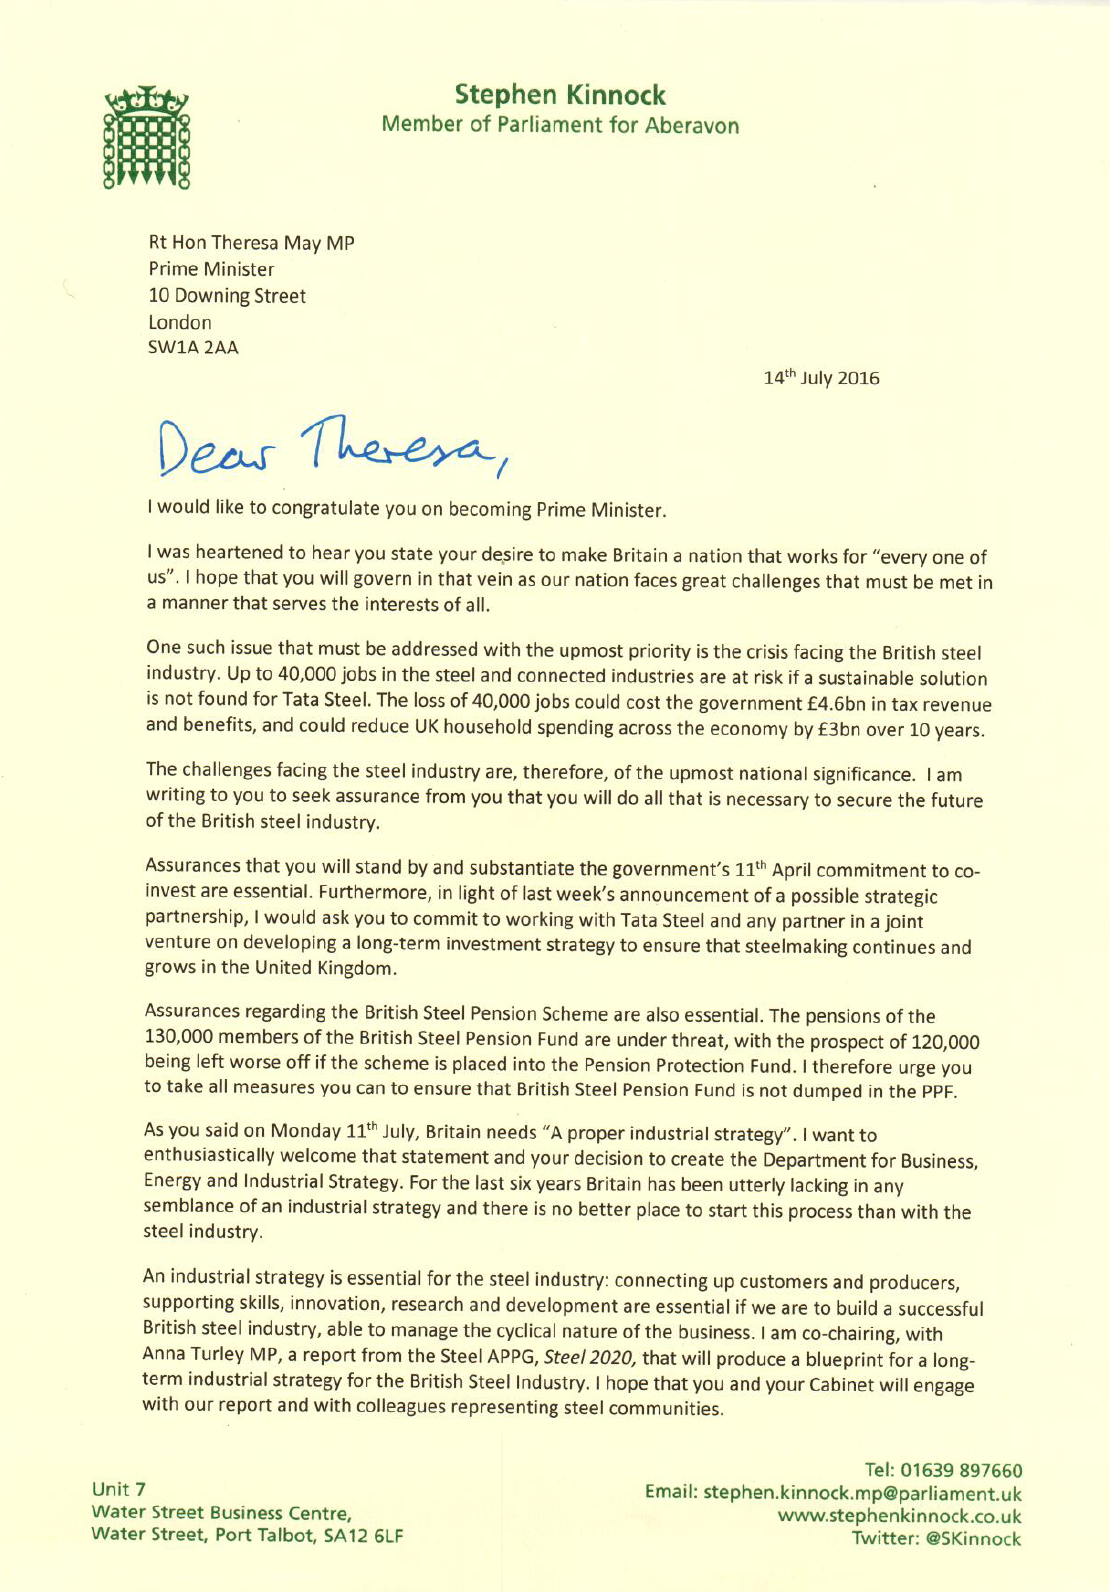 Letter_to_Theresa_May_001.png